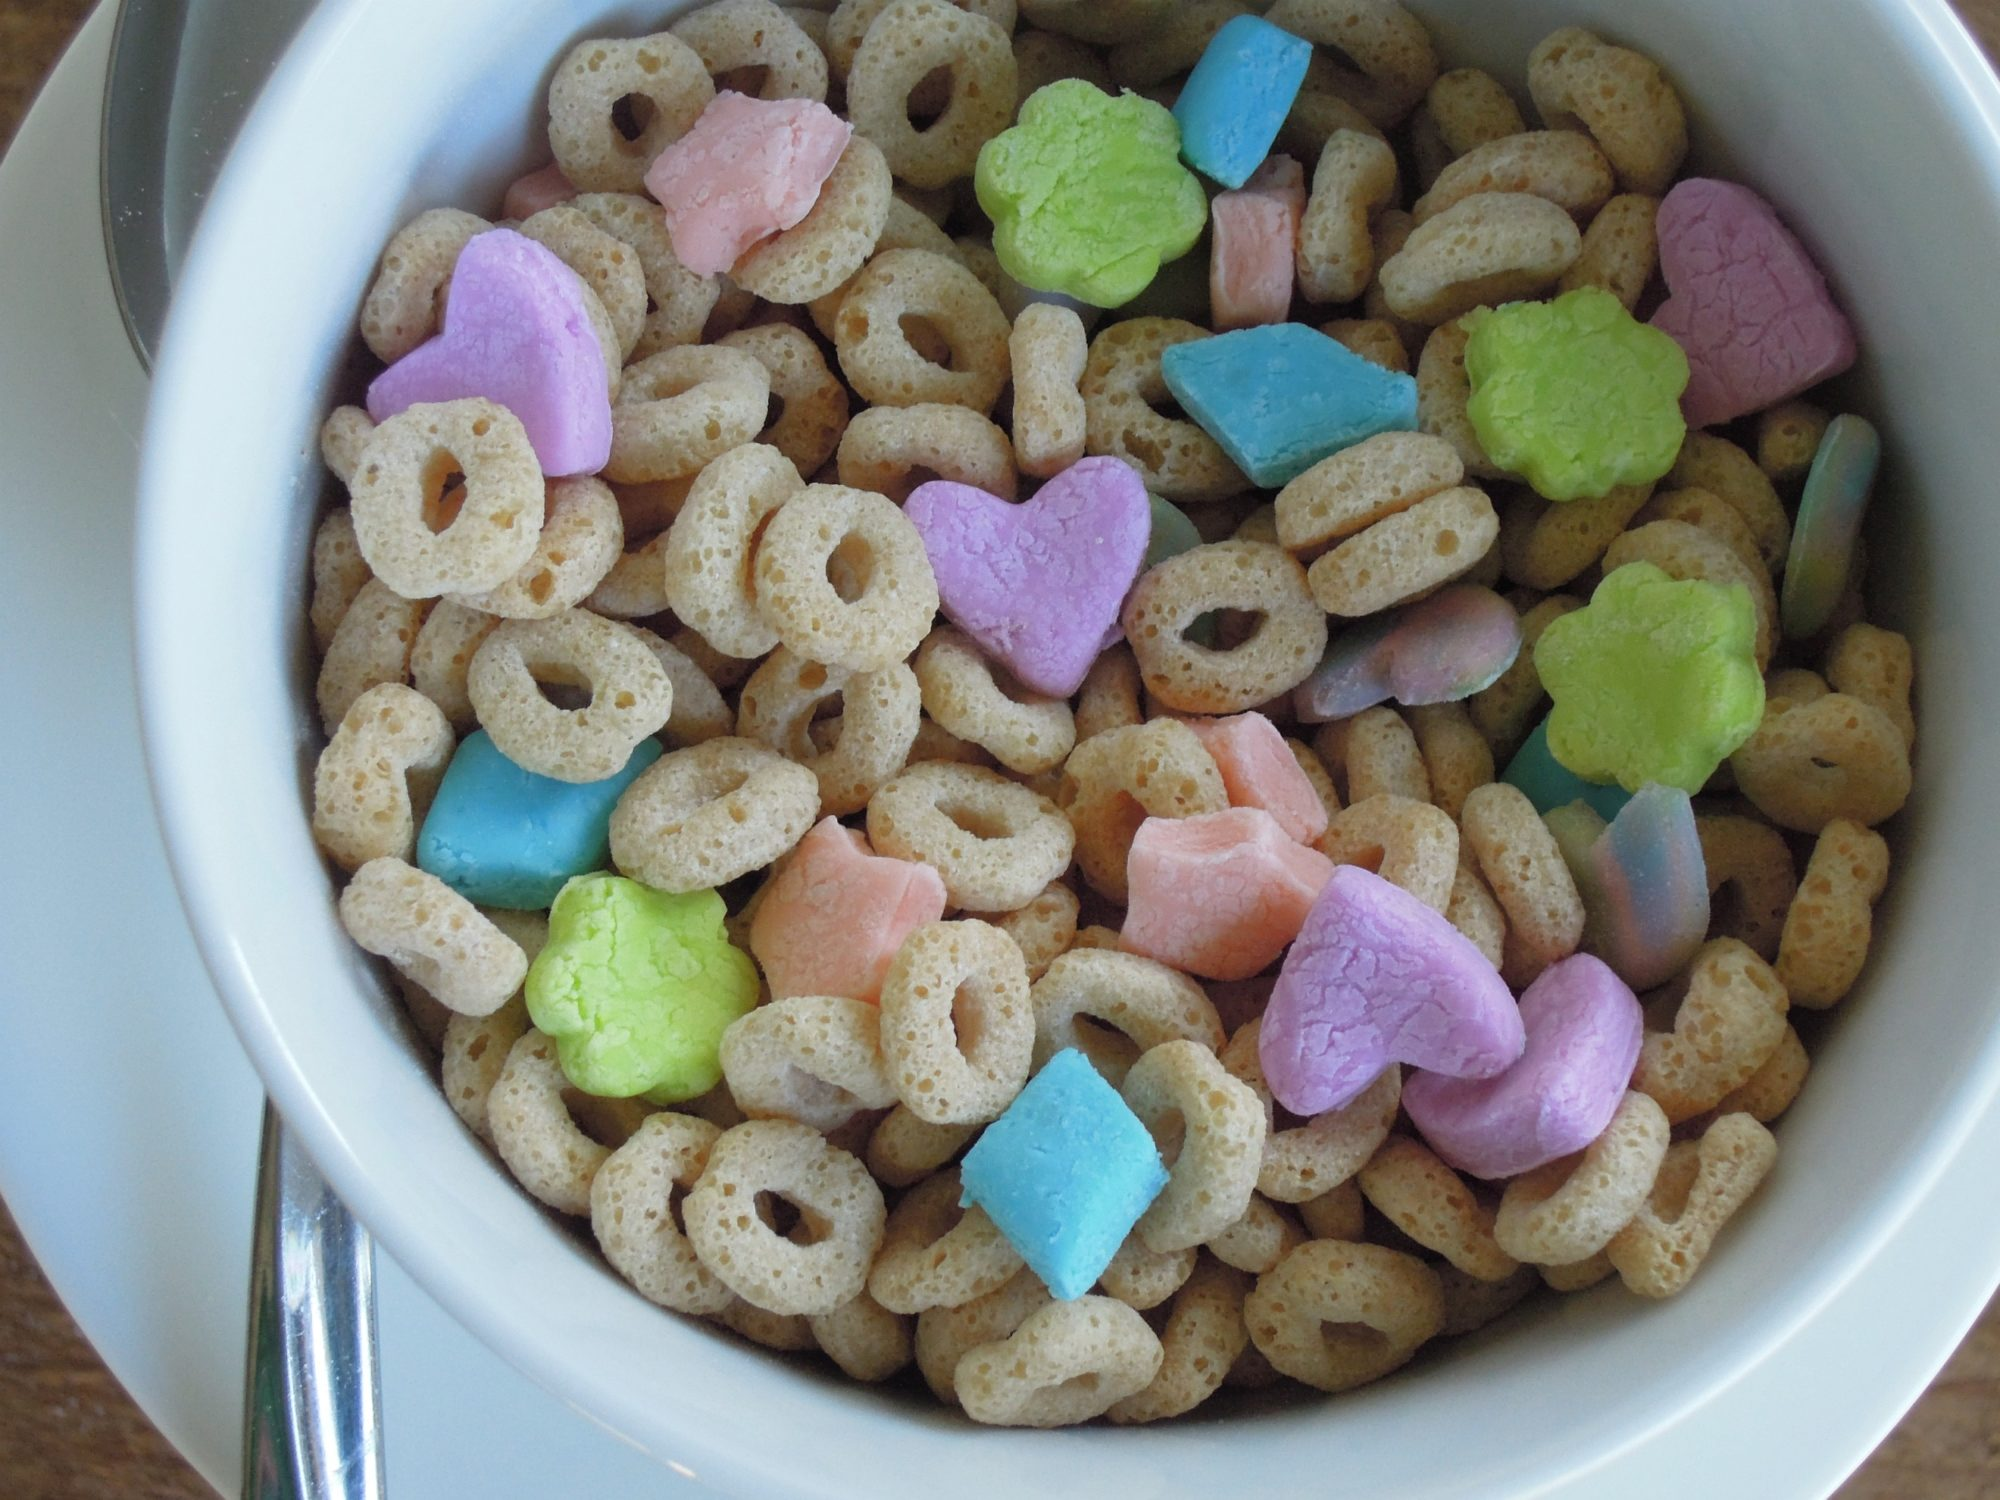 Lucky Charms Treats Lucky Charms Cereal Cereal Bars Cereal Treats Bar Recipes Dessert Recipes Sweet Recipes Yummy Recipes Breakfast Recipes Forward Lucky Charms treat bars (similar to rice crispie treats) would be cool for st. pattys or easter treats.